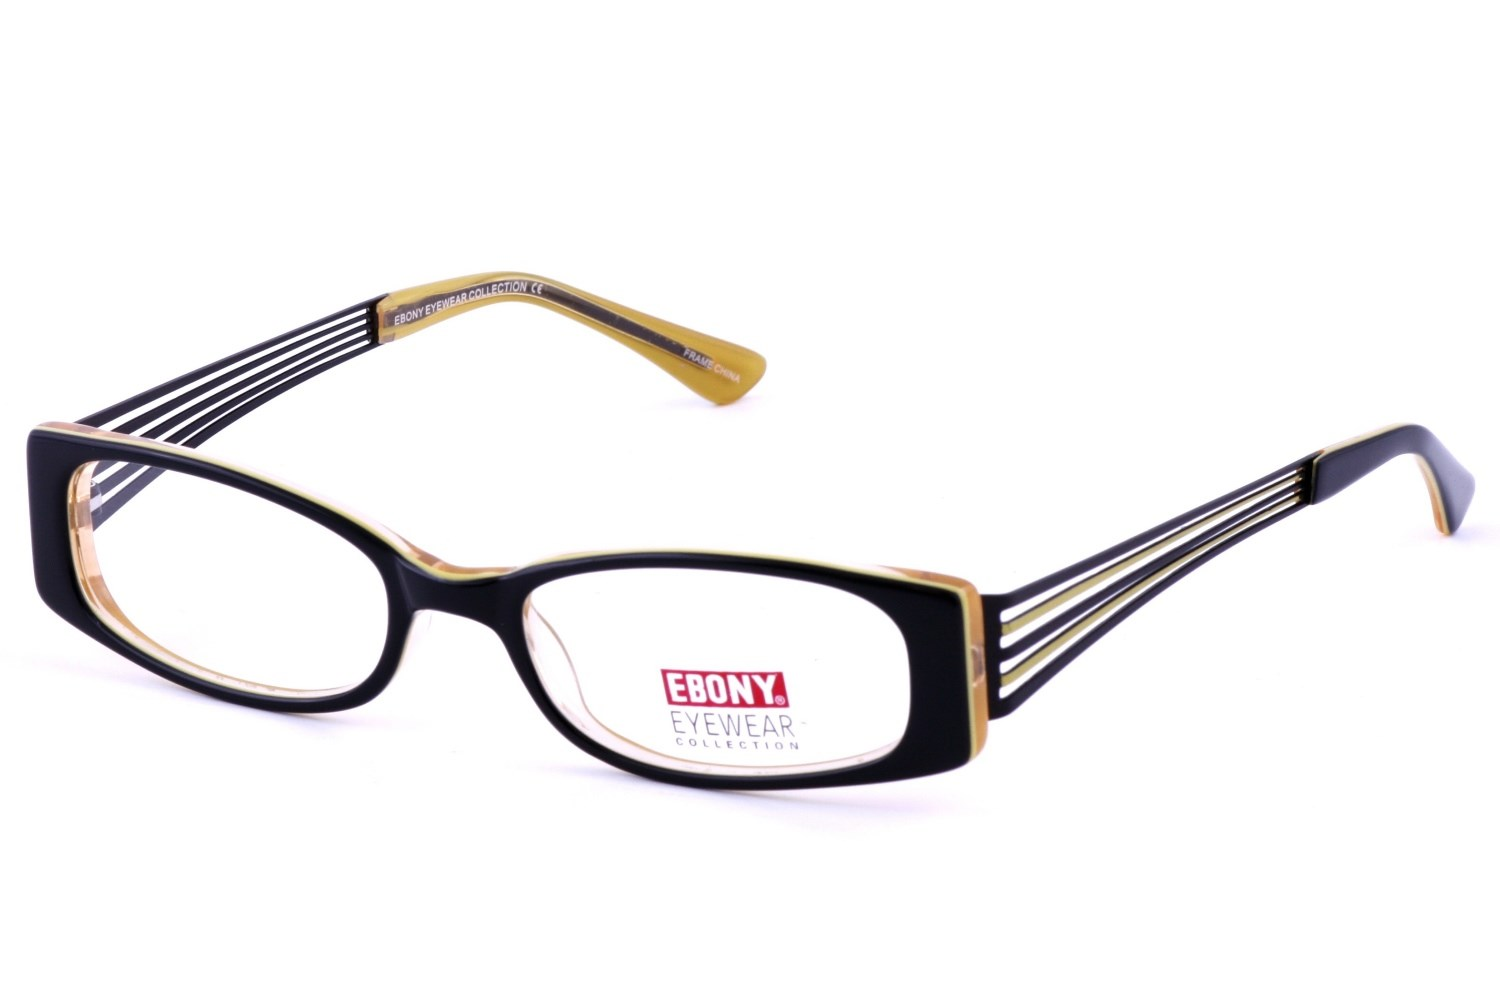 Ebony 2 Prescription Eyeglasses Frames